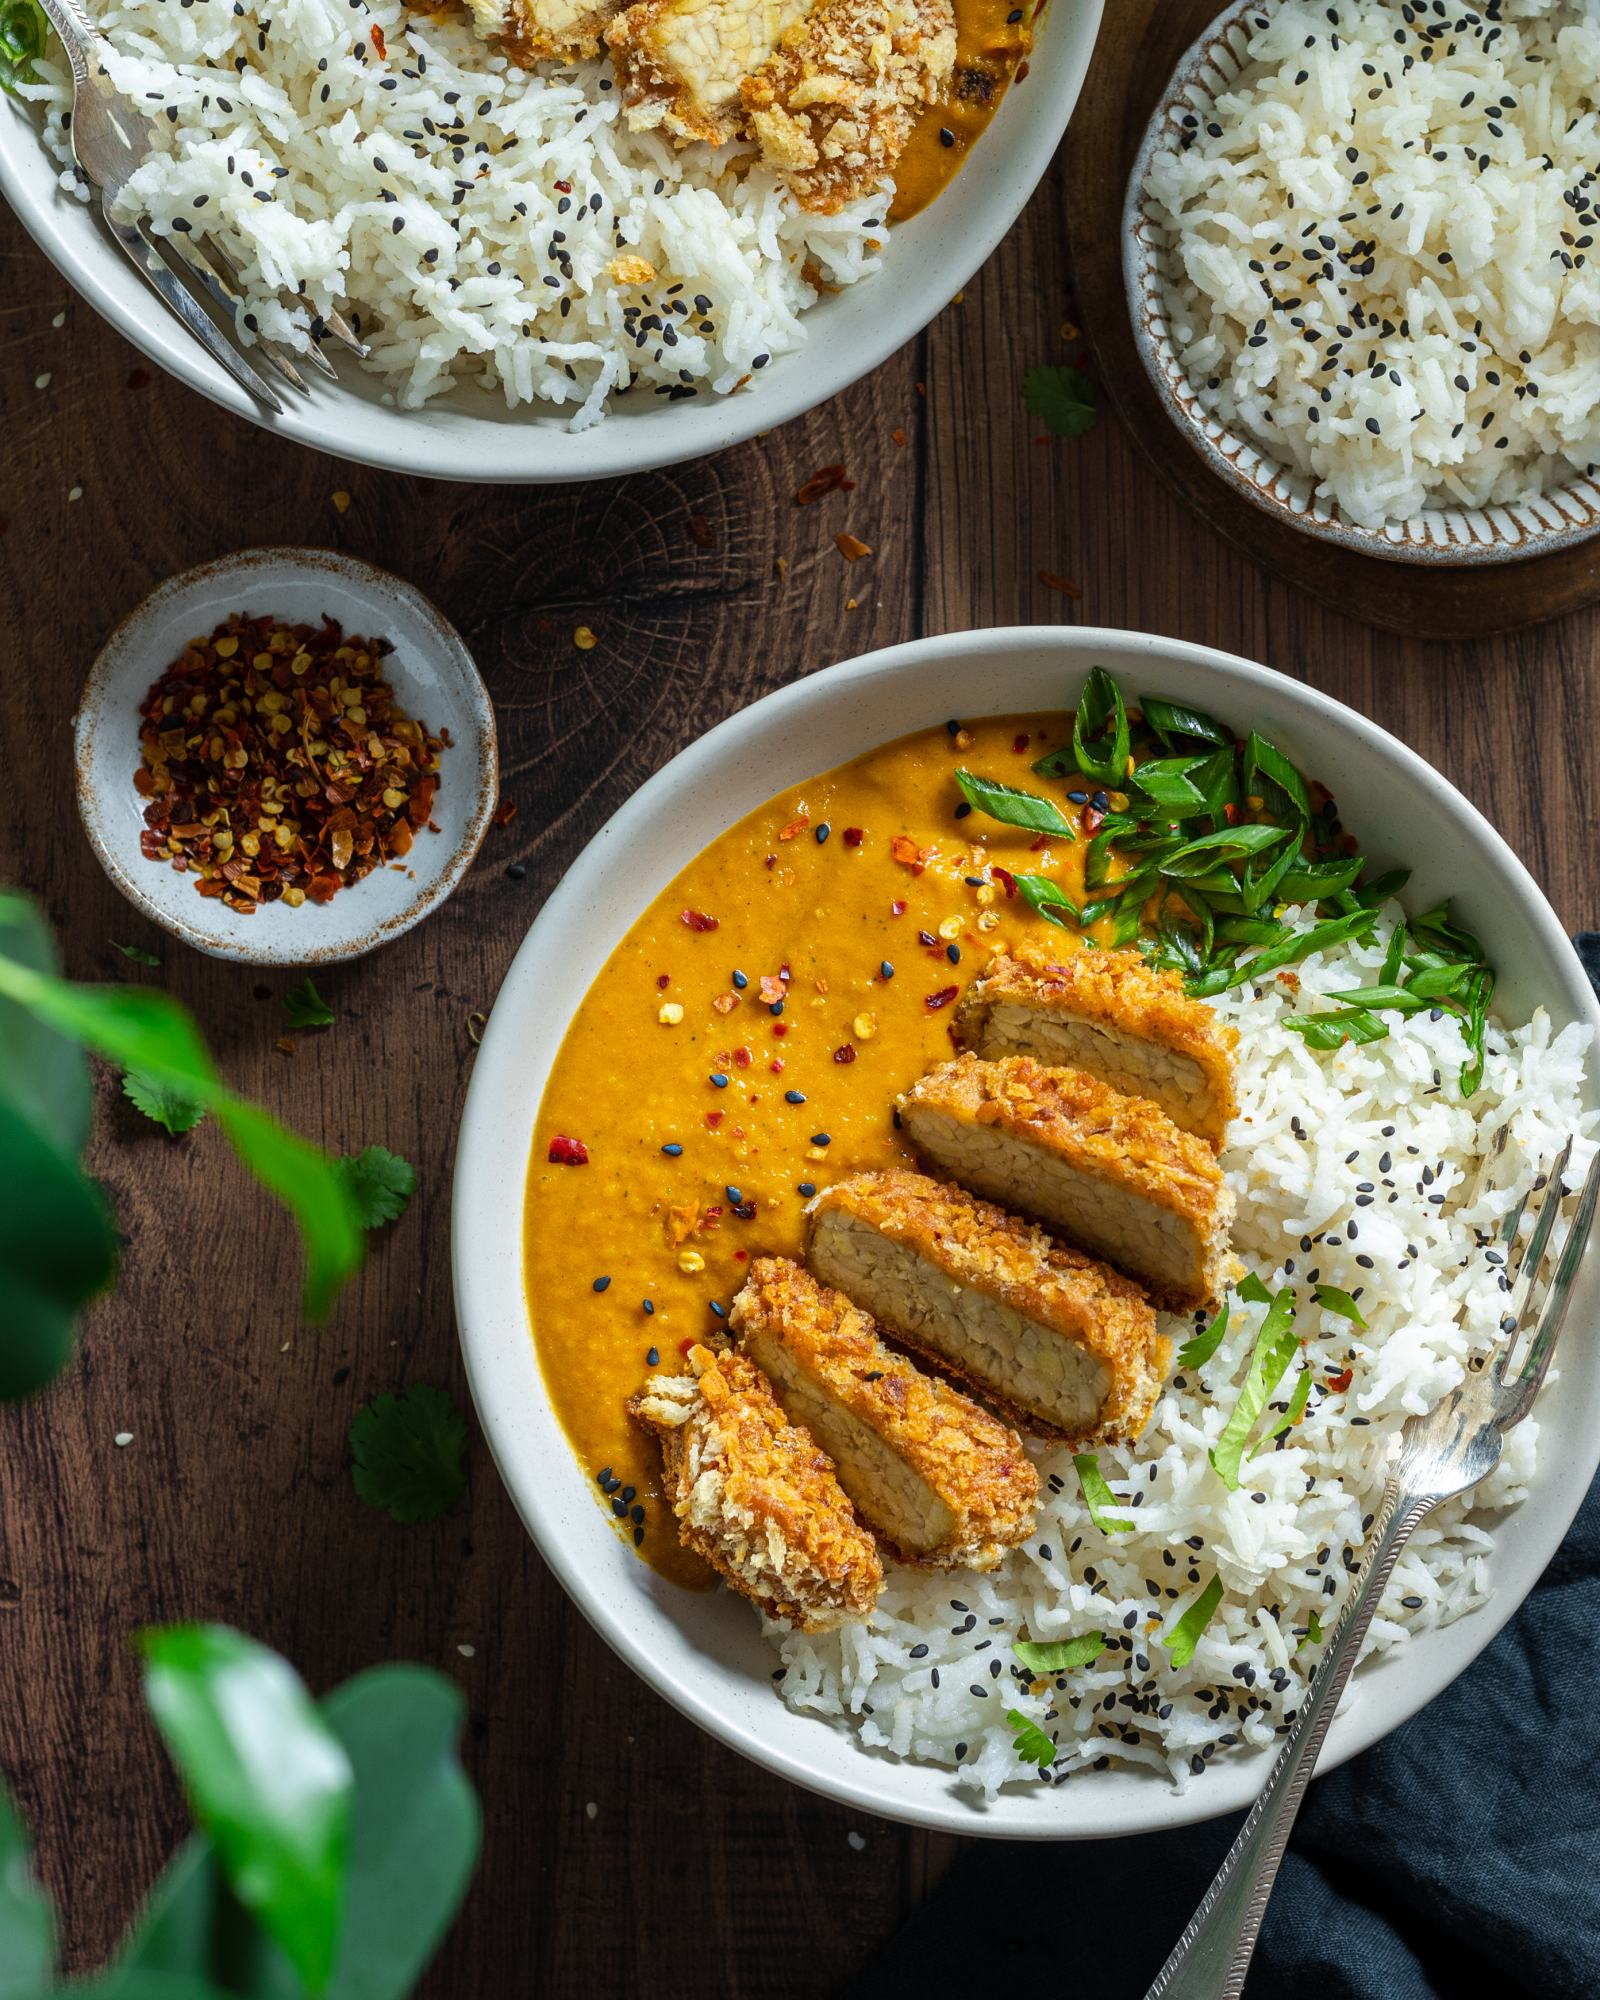 Vegan Katsu Curry with Tempeh - two bowls on a dark backdrop, focus on one of the bowls, rice and katsu sauce on each bowl with a fork, sliced crunchy panko coated tempeh on top, tiba tempeh packaging placed besides the bowls